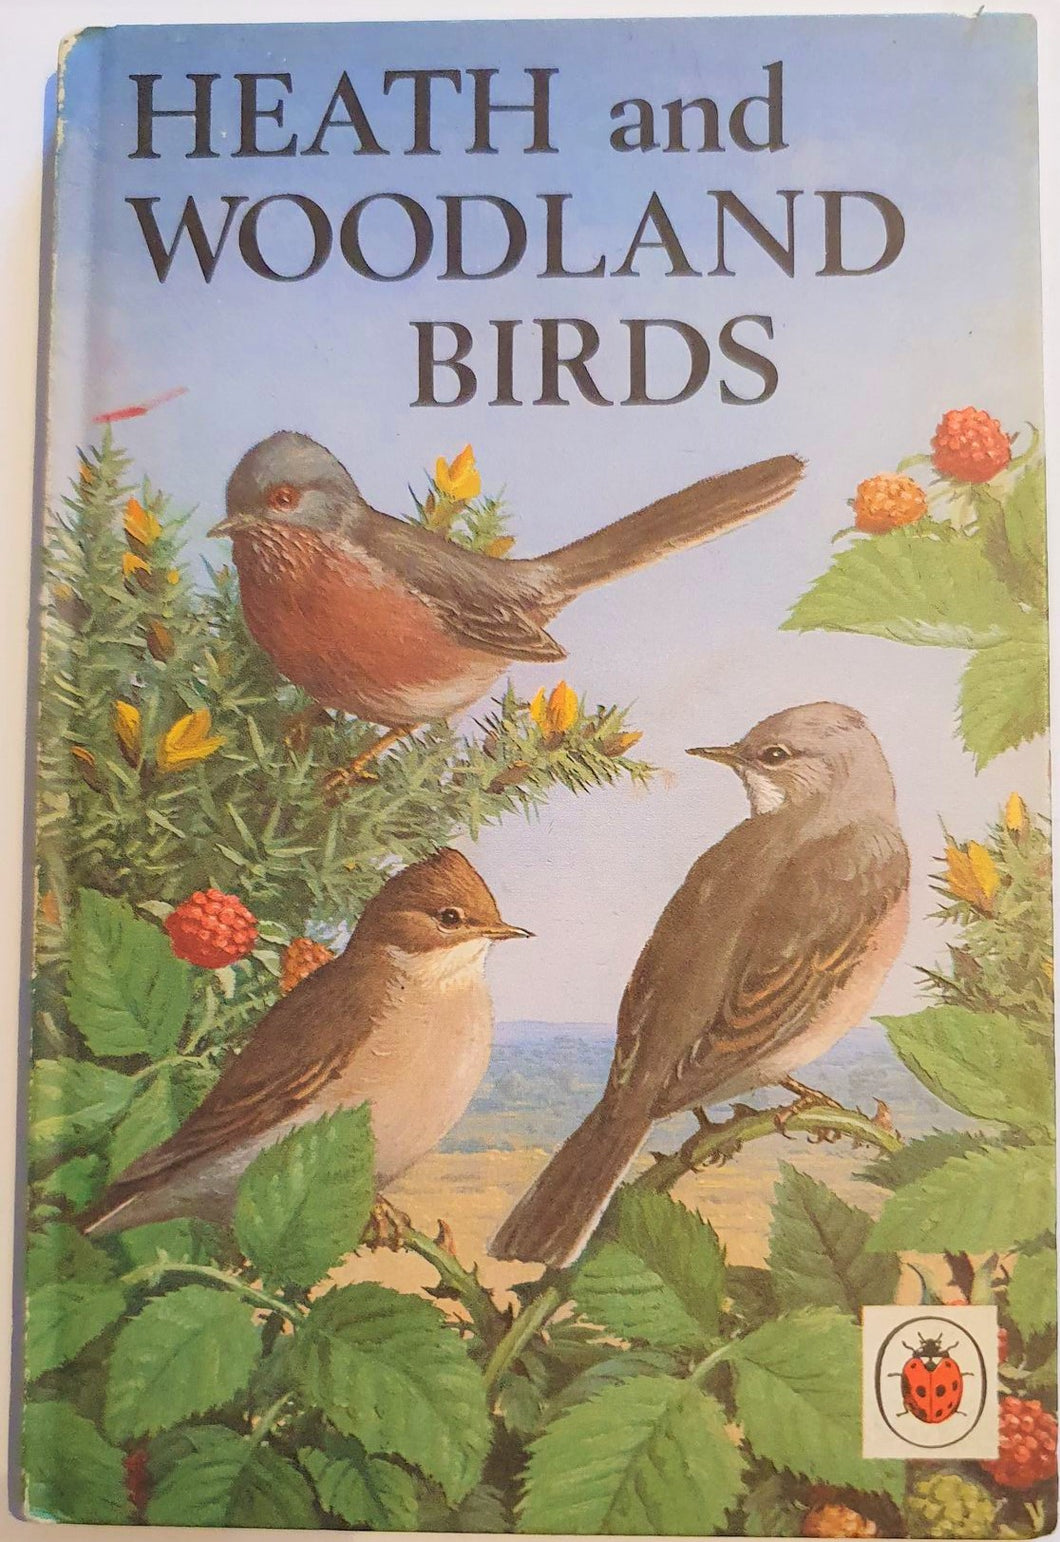 Heath and Woodland Birds (11 January 1978 - 24 June 1979)